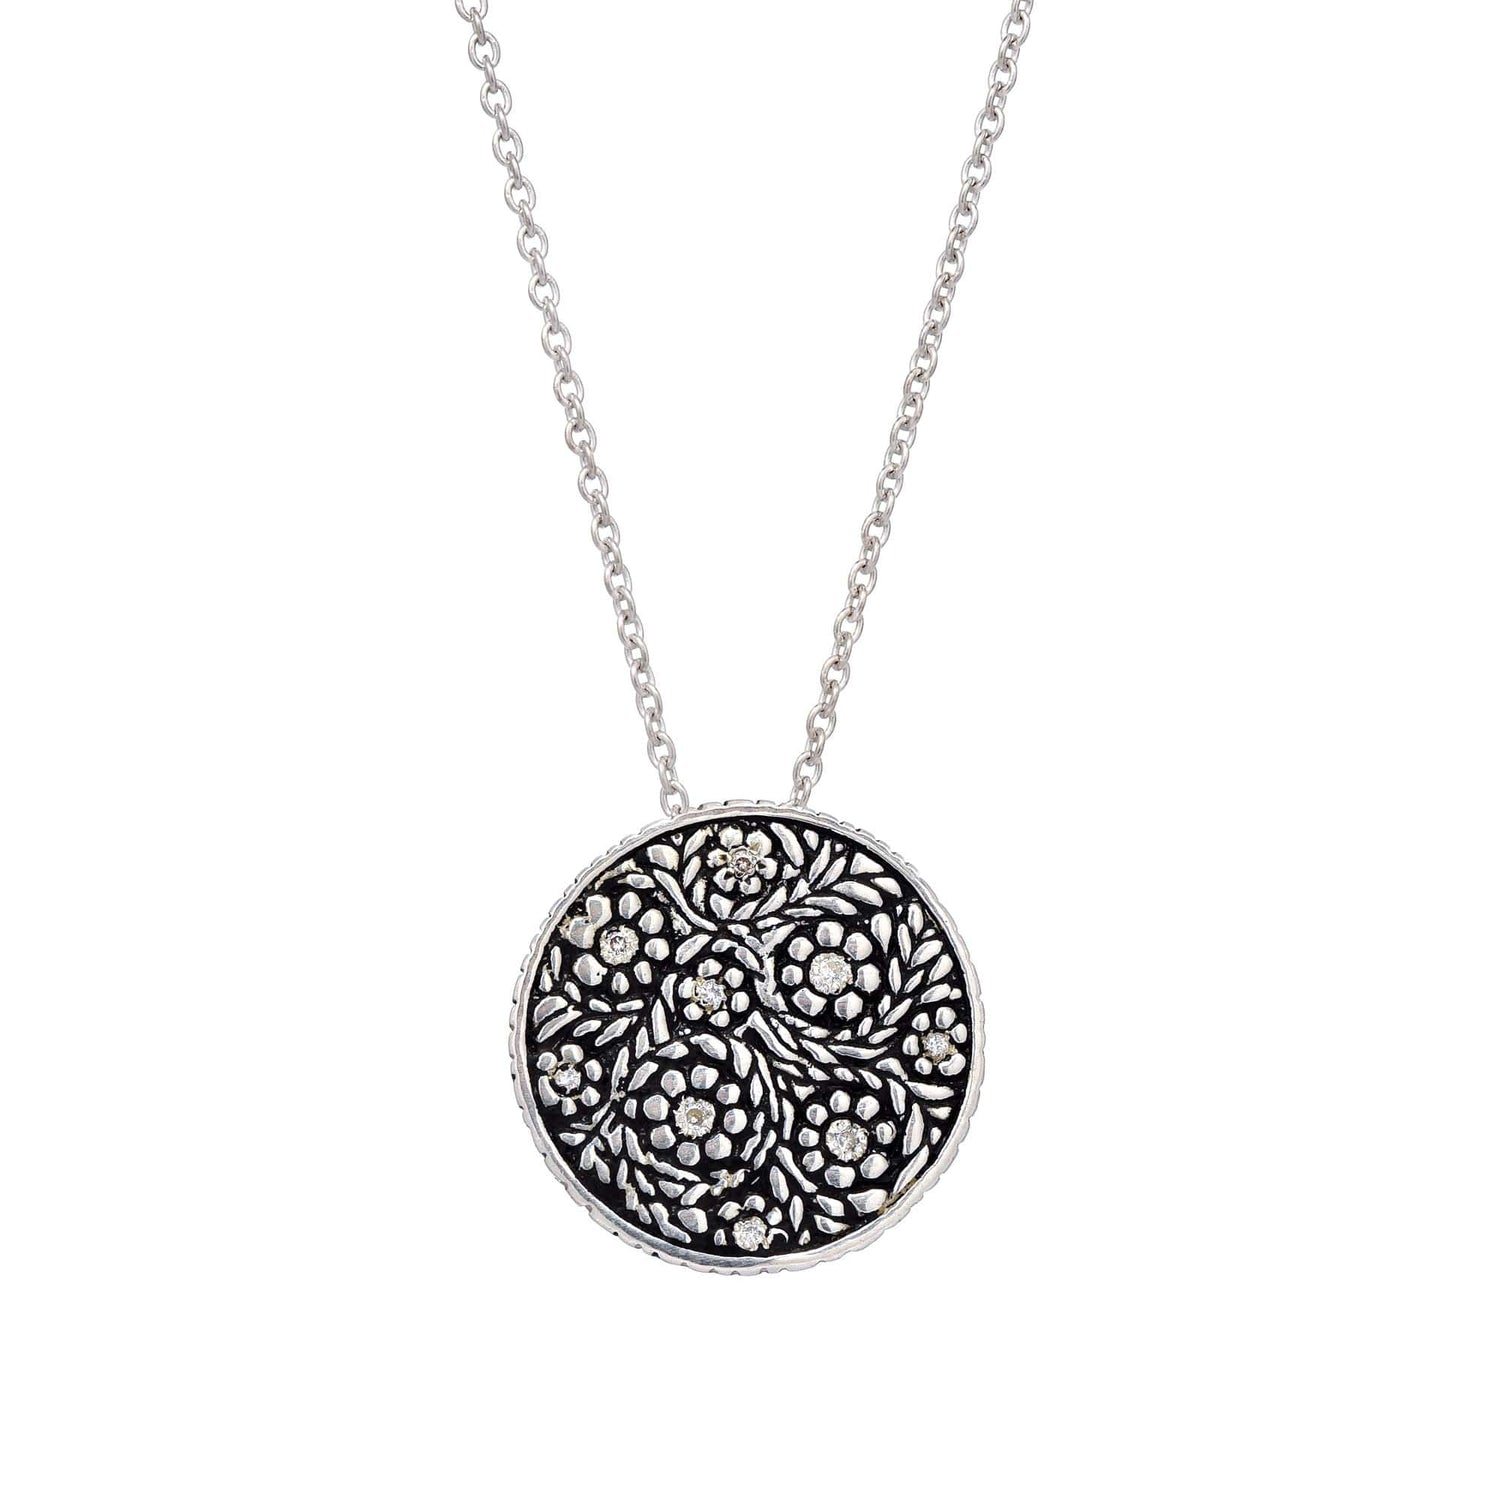 Diamond Floral Oxidized Silver Disc Pendant - Curated Los Angeles